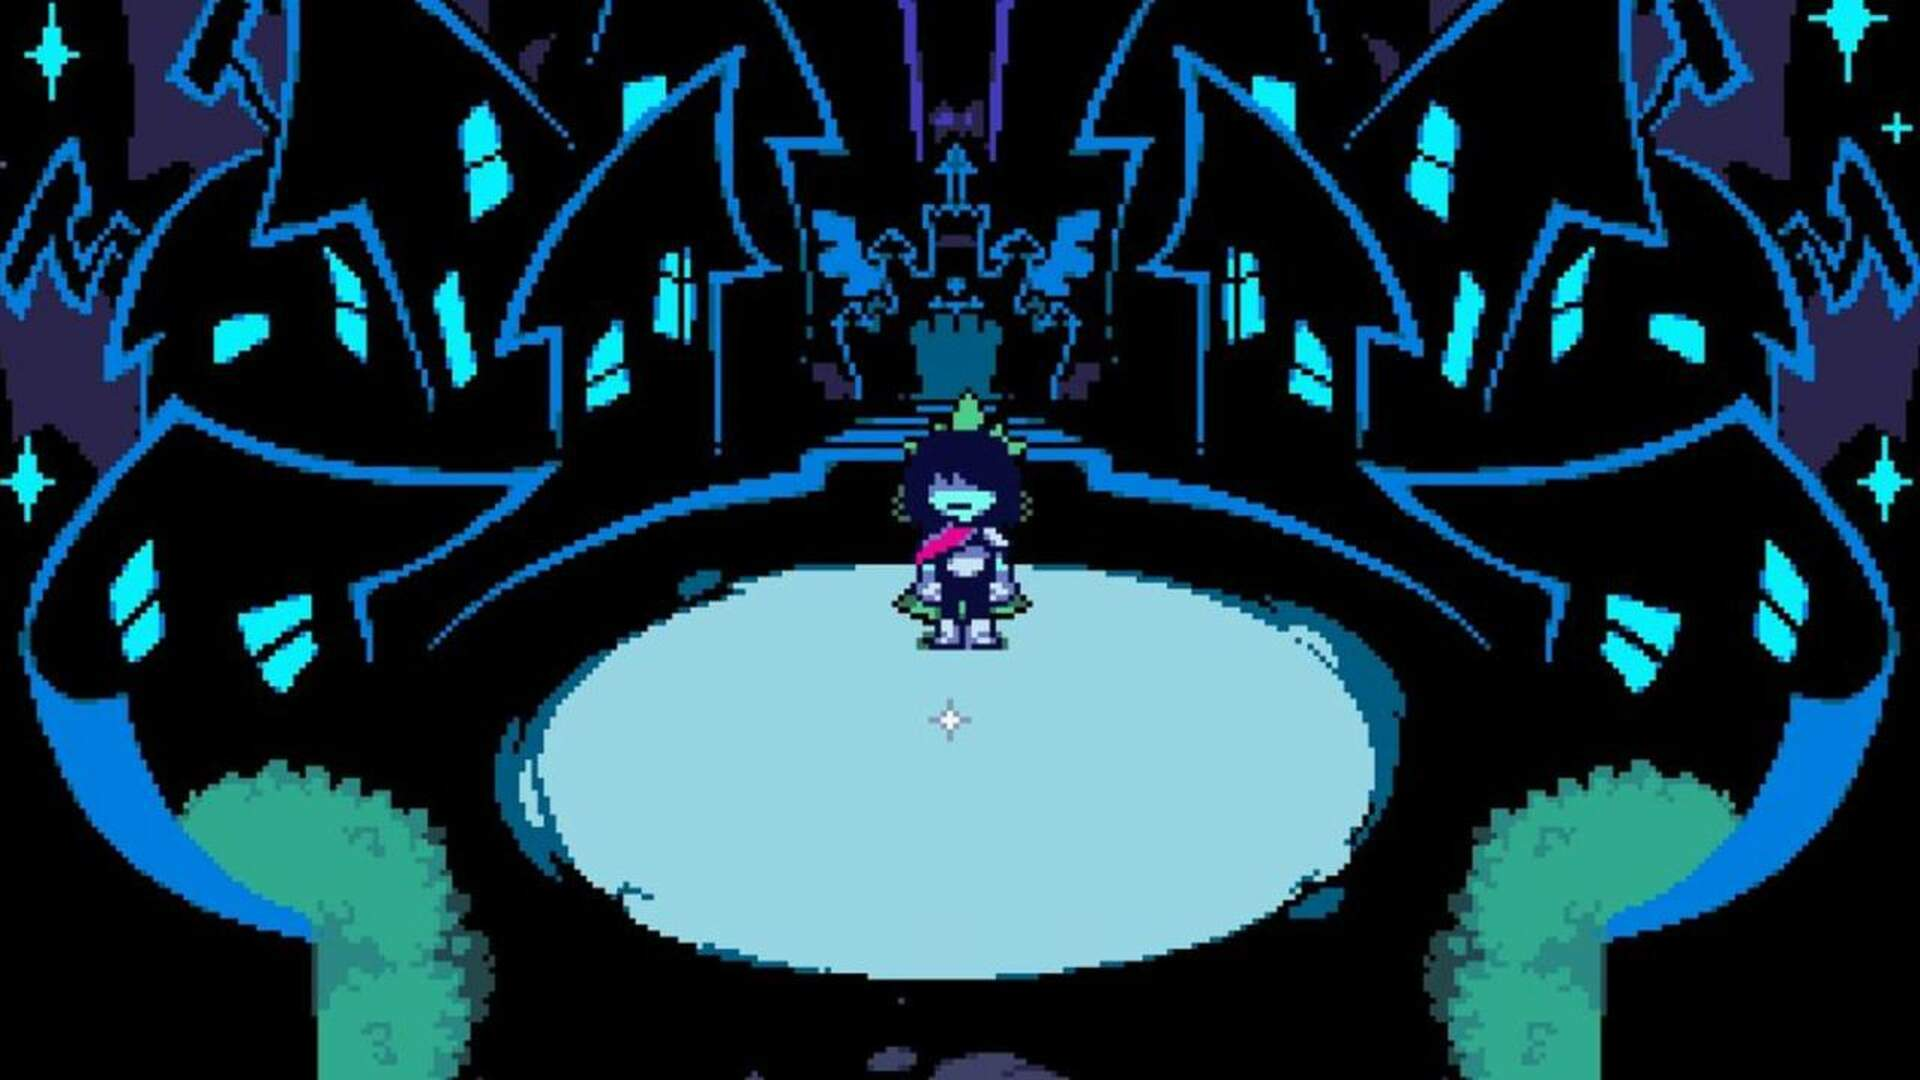 Toby Fox Gives an Update on Deltarune, in Honor of Undertale's Anniversary